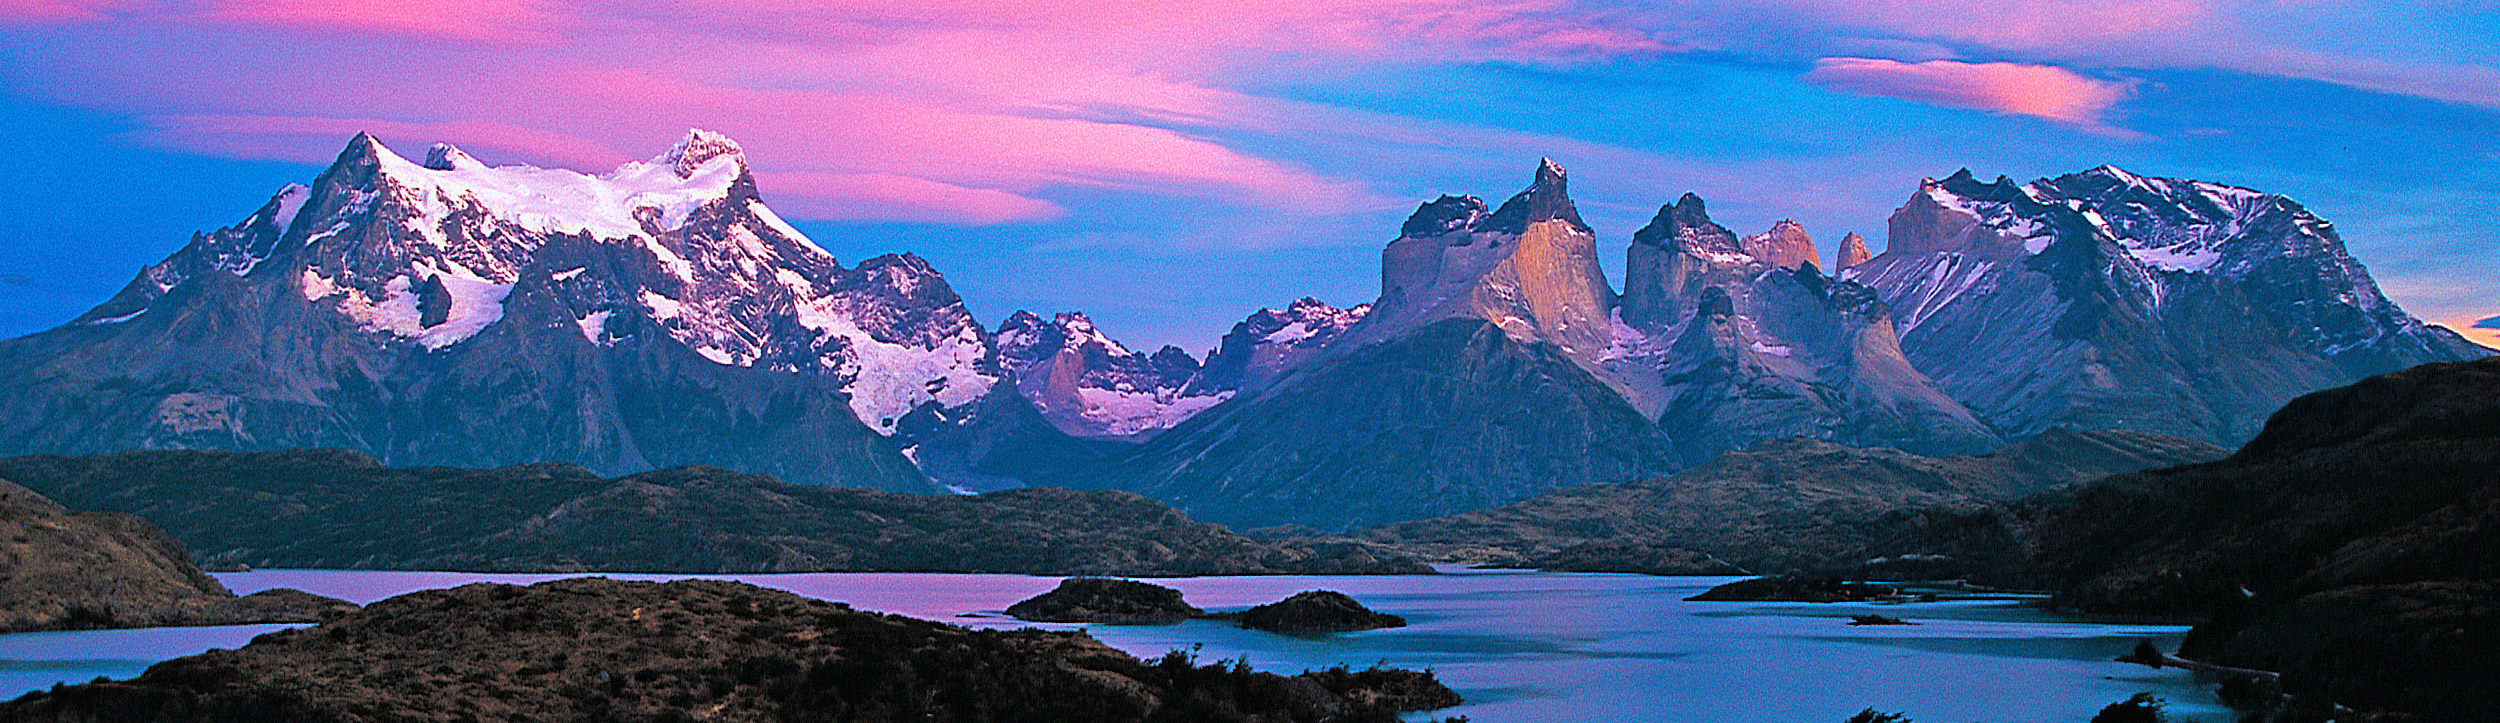 torres del paine guided tours